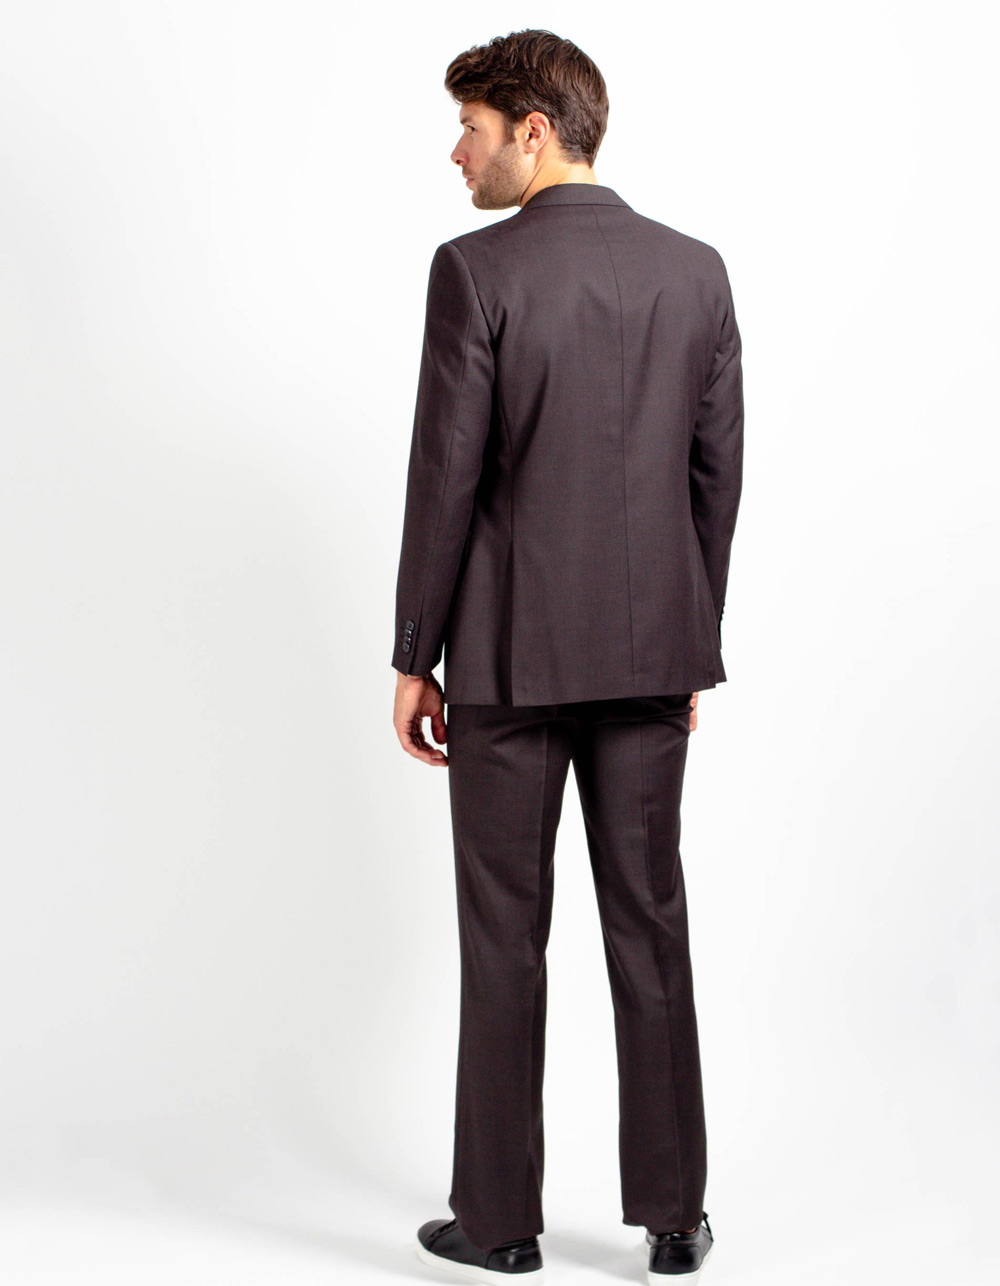 Traje liso marrón - Backside